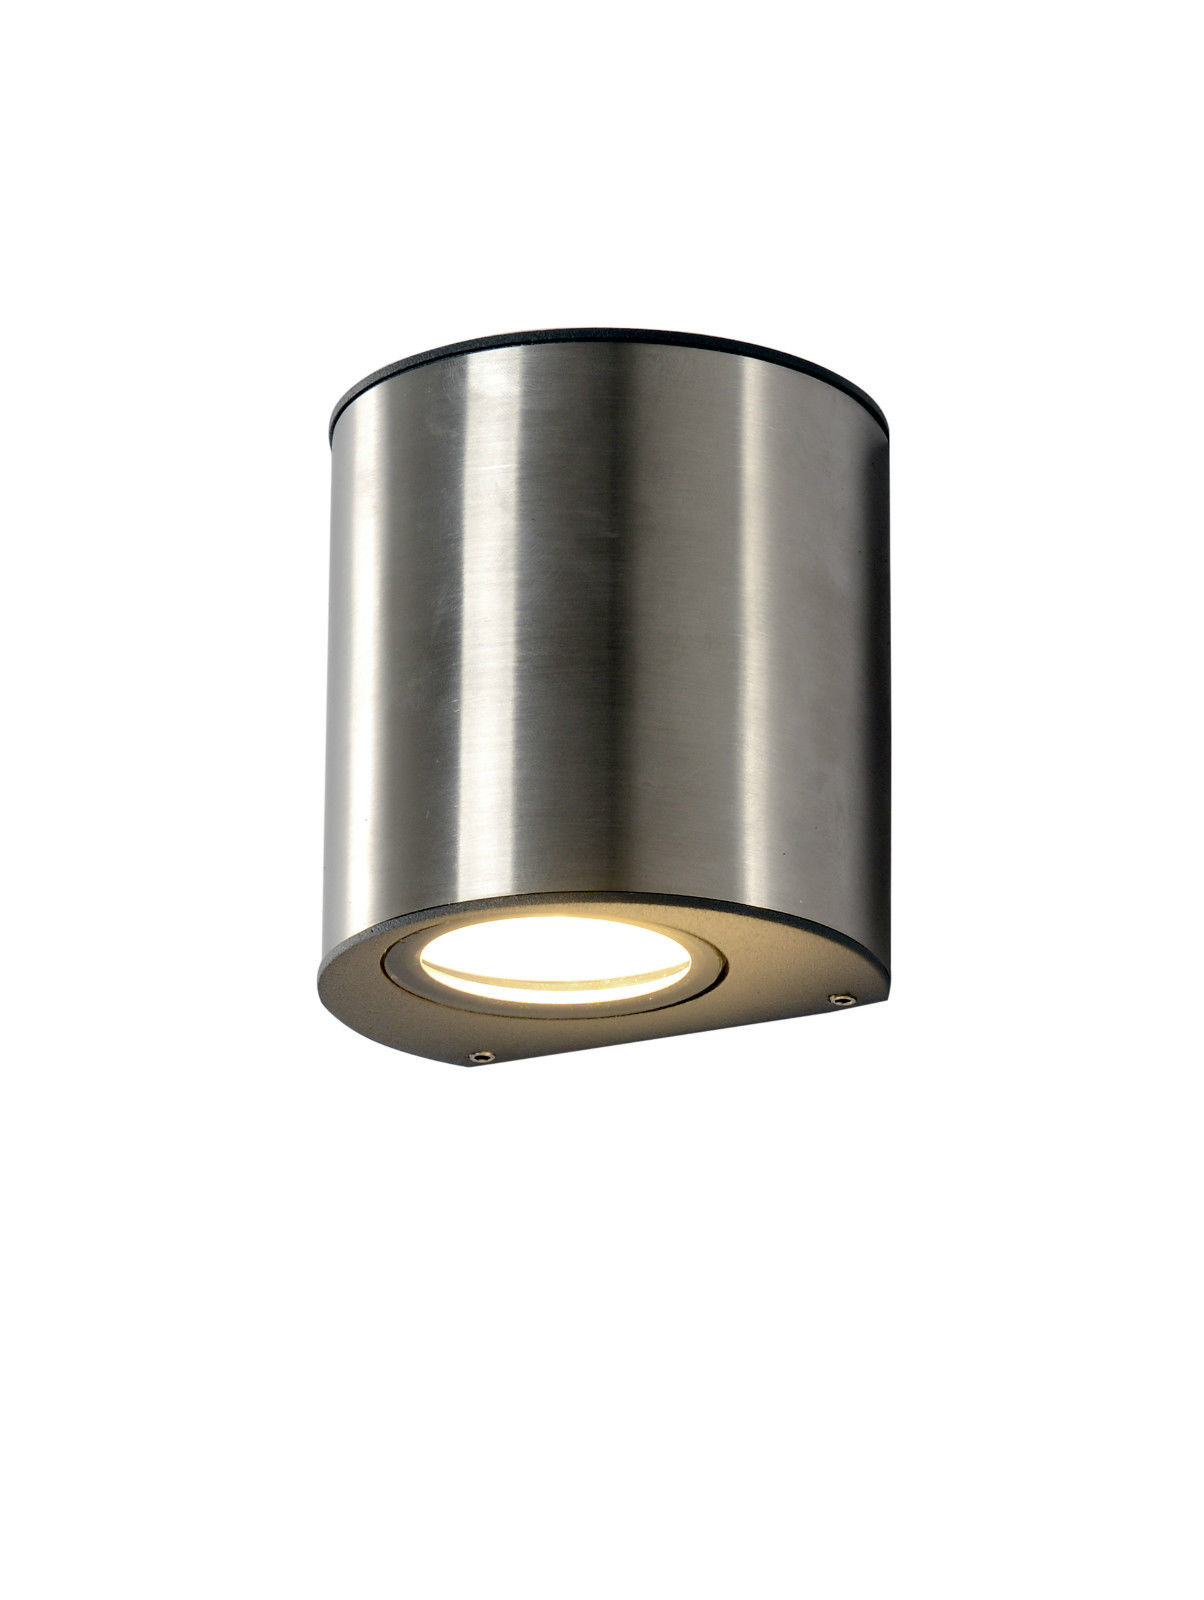 Wall Sconce With Down Light : 2x Modern Exterior Stainless Steel Up Down Light Wall Sconce Outdoor eBay